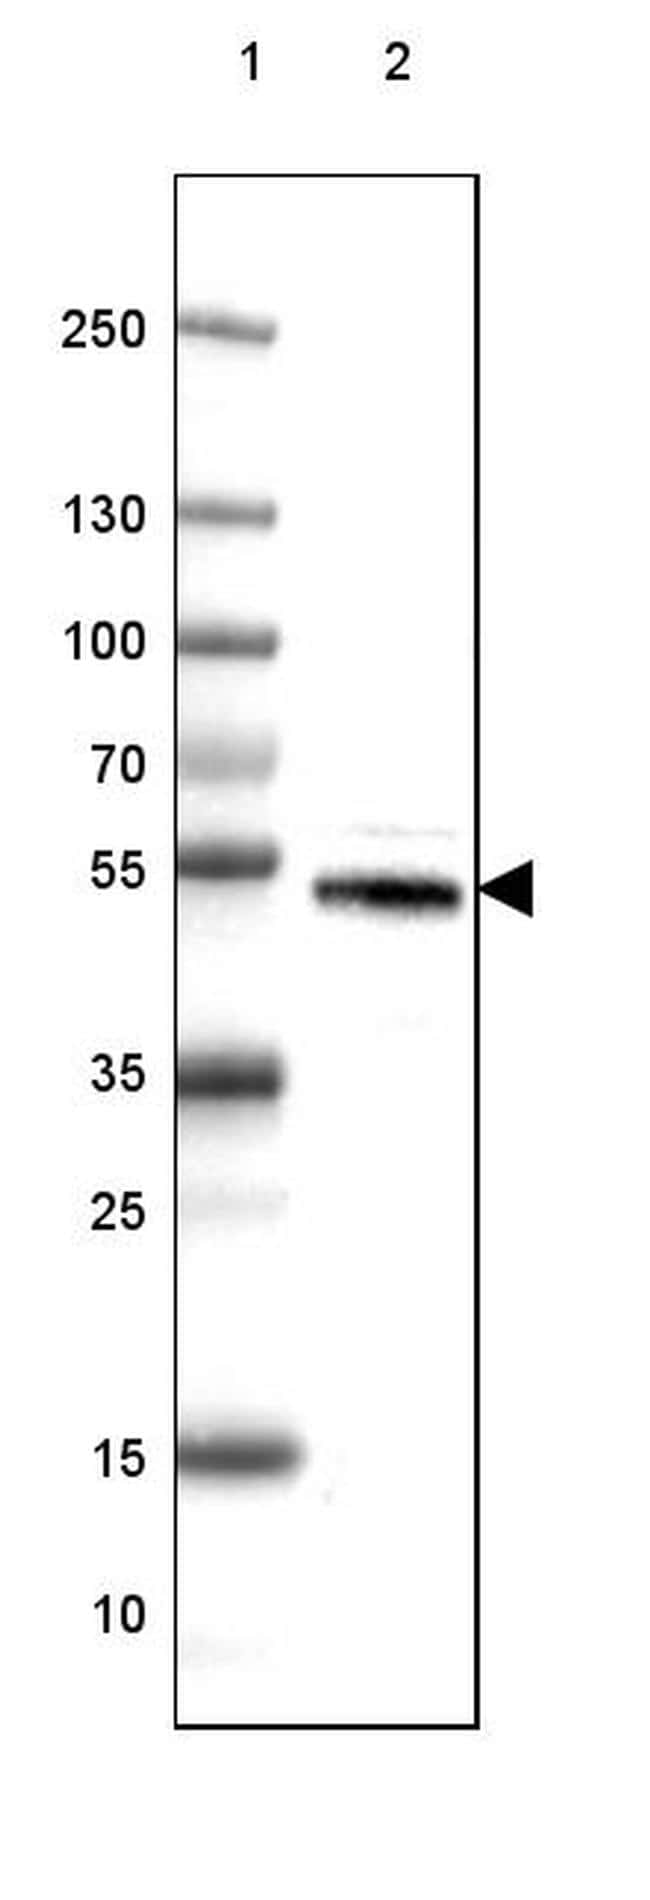 DOPA Decarboxylase Antibody in Western Blot (WB)